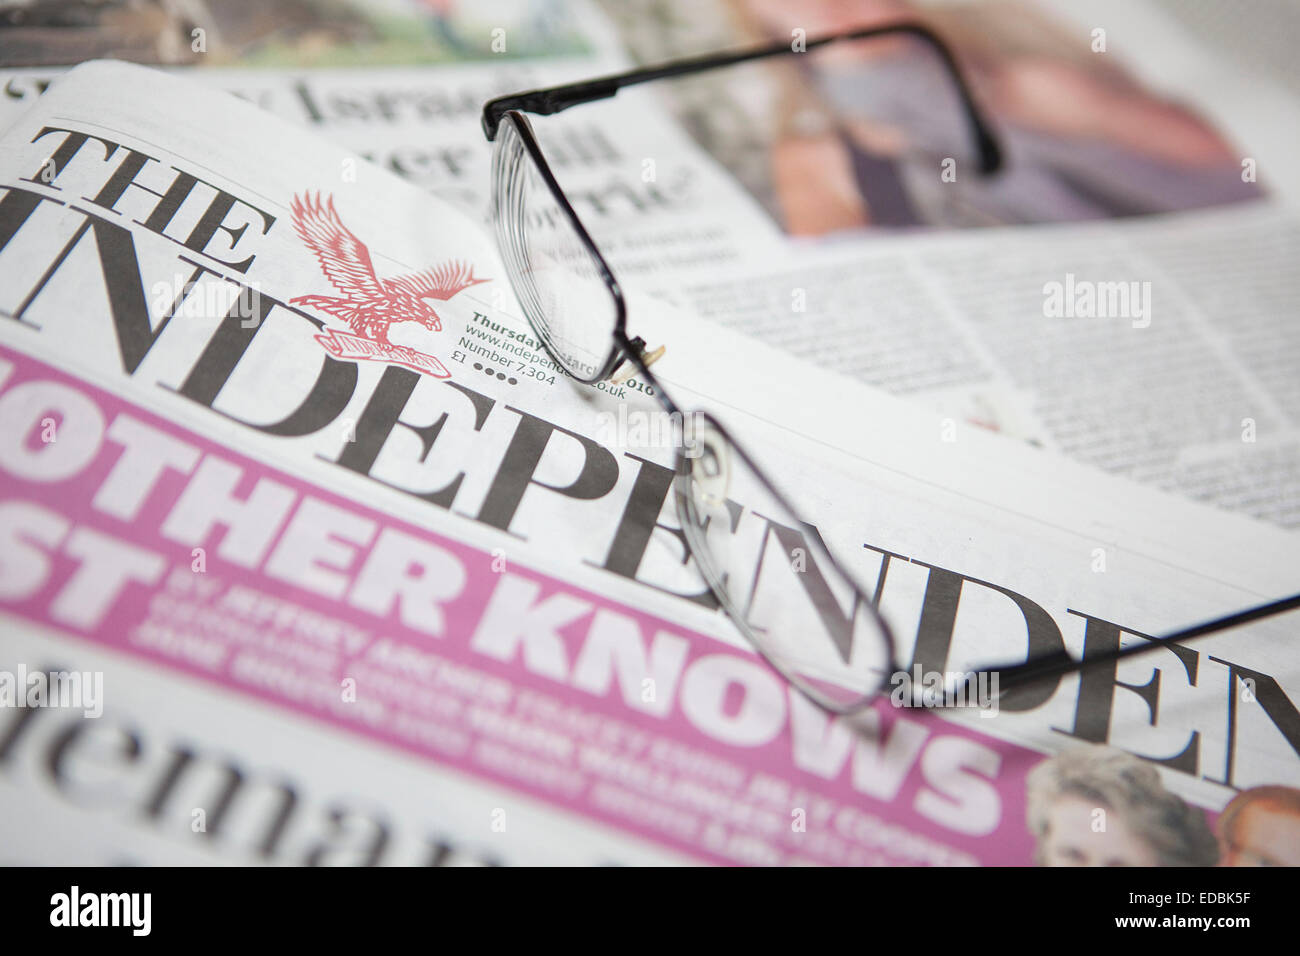 Illustrative image of The Independent newspaper - Stock Image